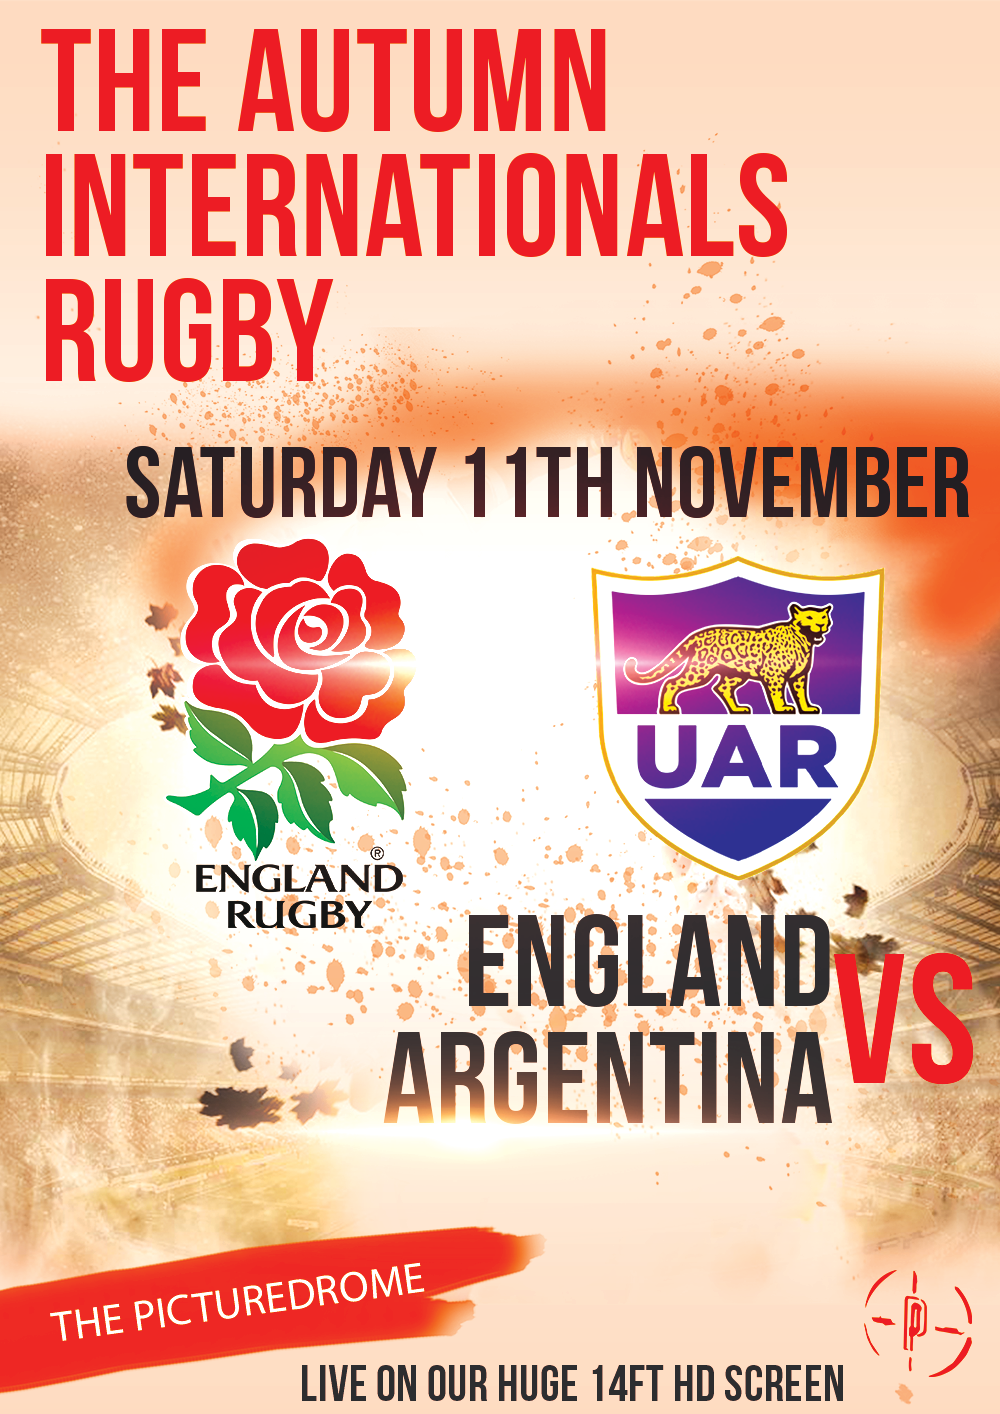 England vs Argentina Saturday 11th November Click here for more event info